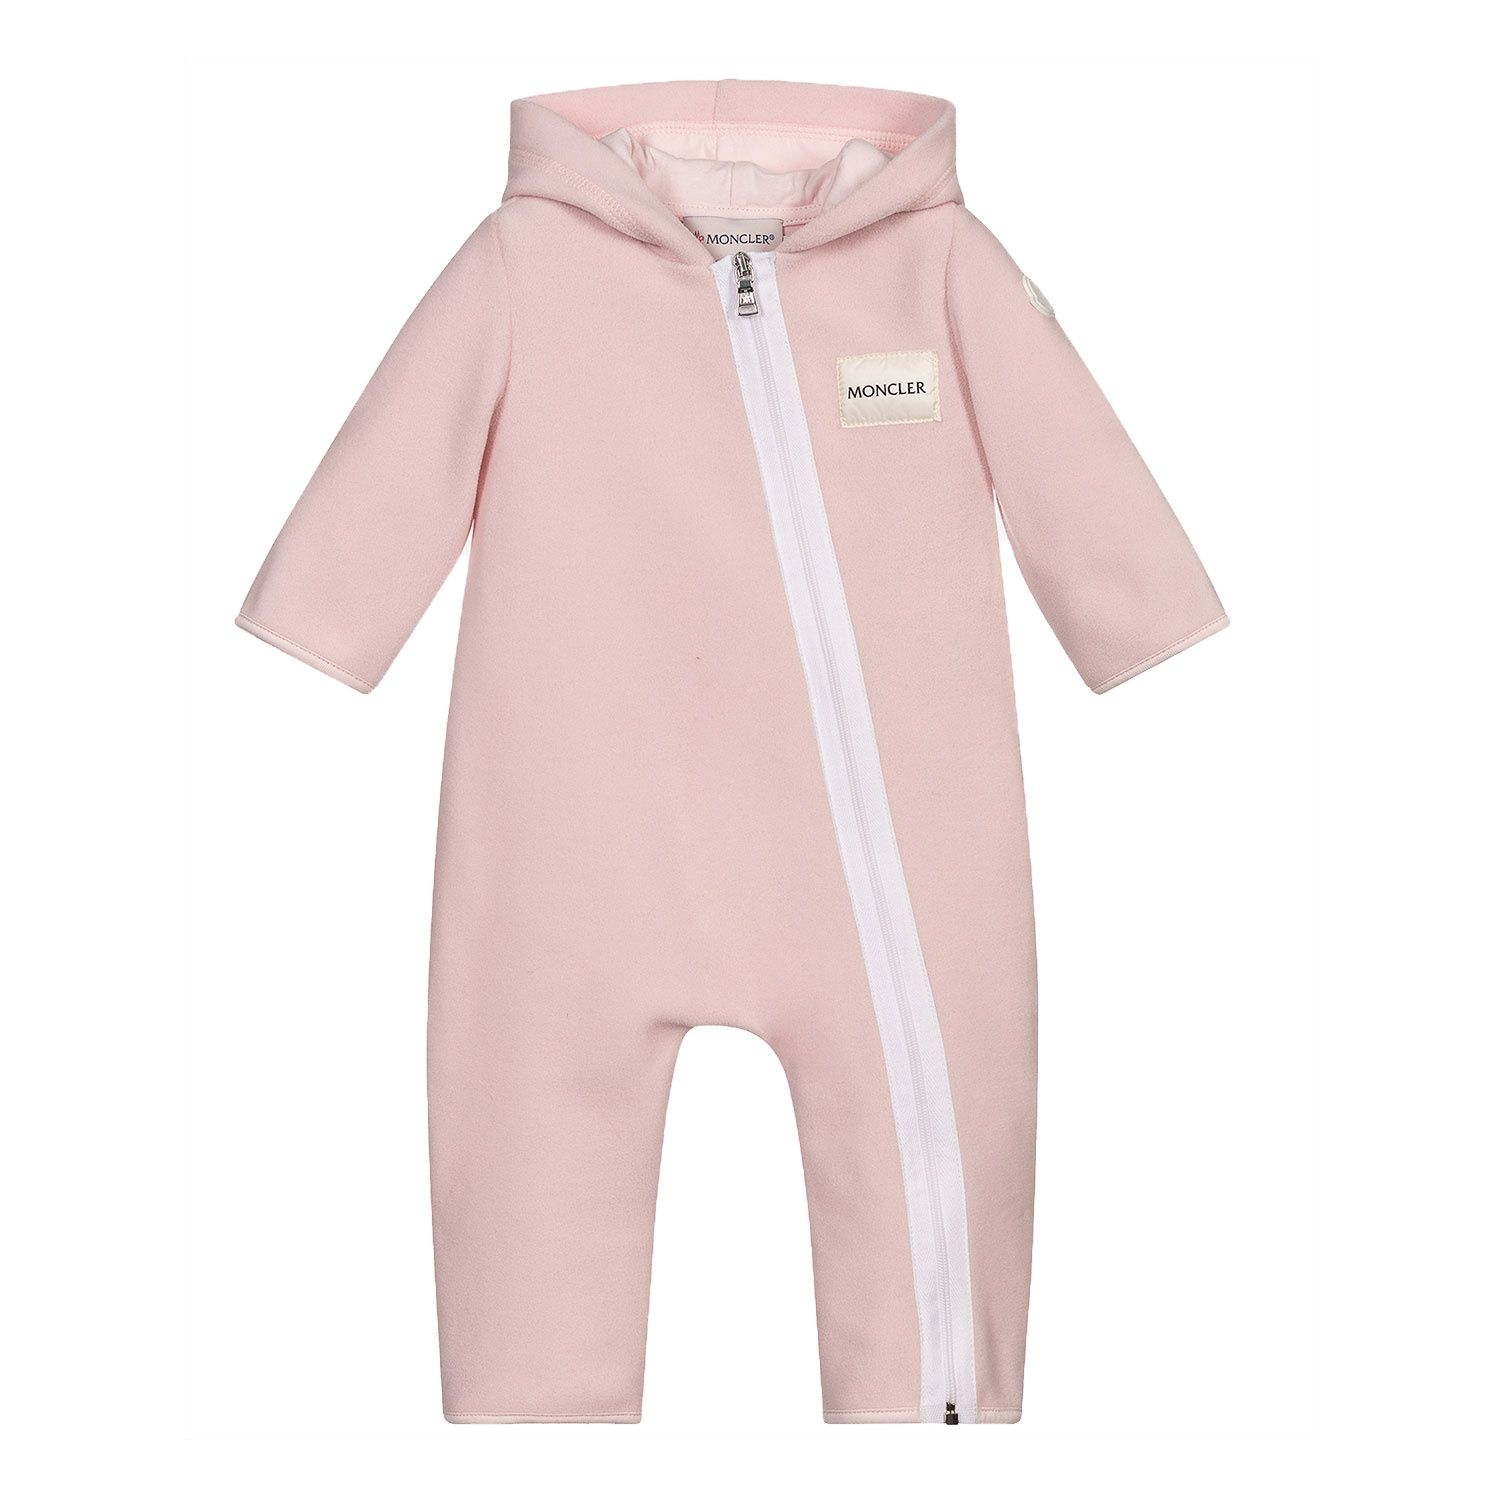 Picture of Moncler 8L73100 baby playsuit light pink